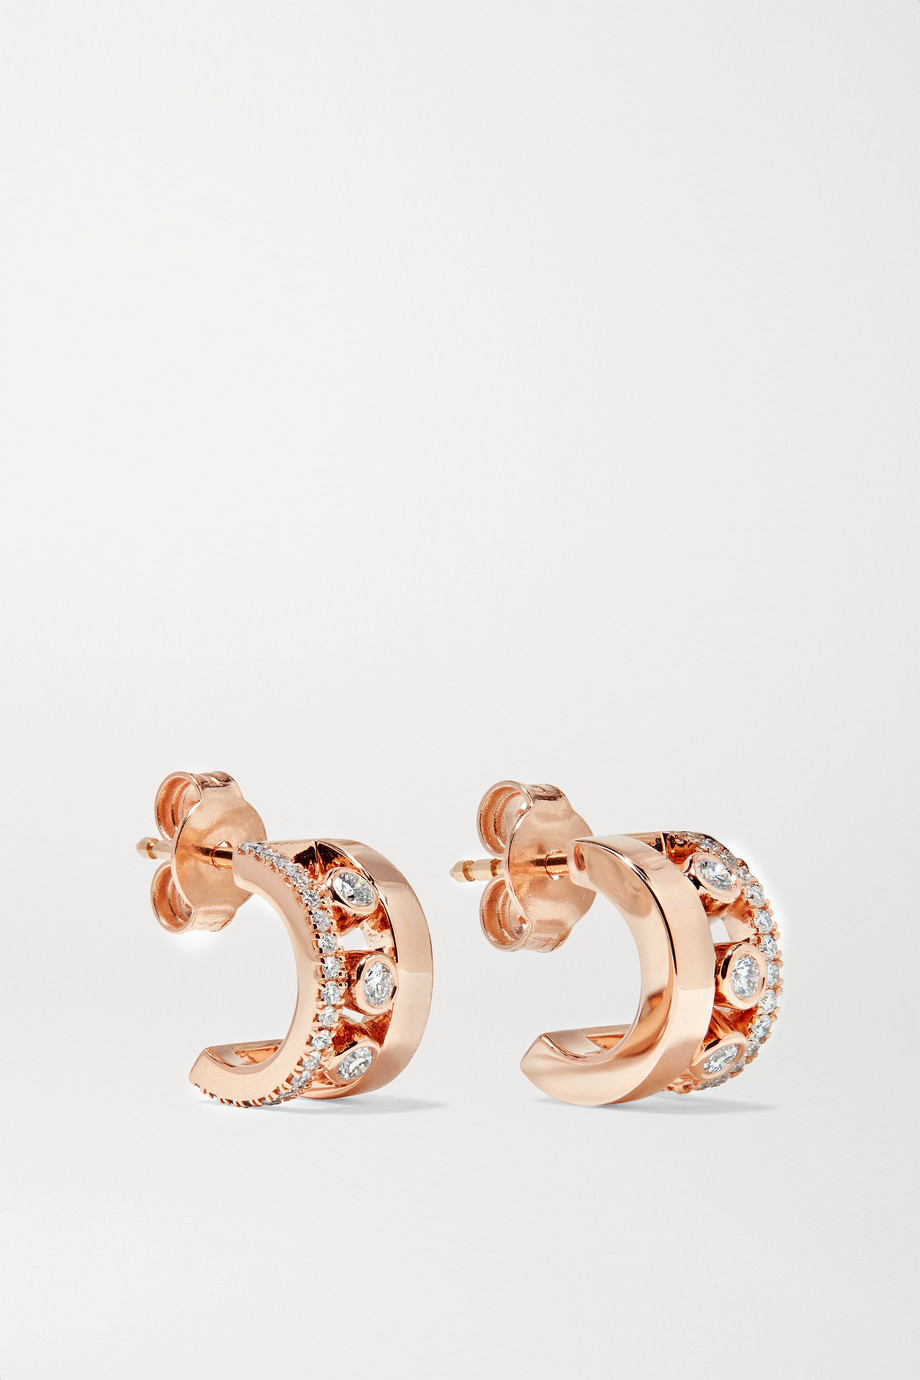 Messika Move Romane 18-karat rose gold diamond hoop earrings